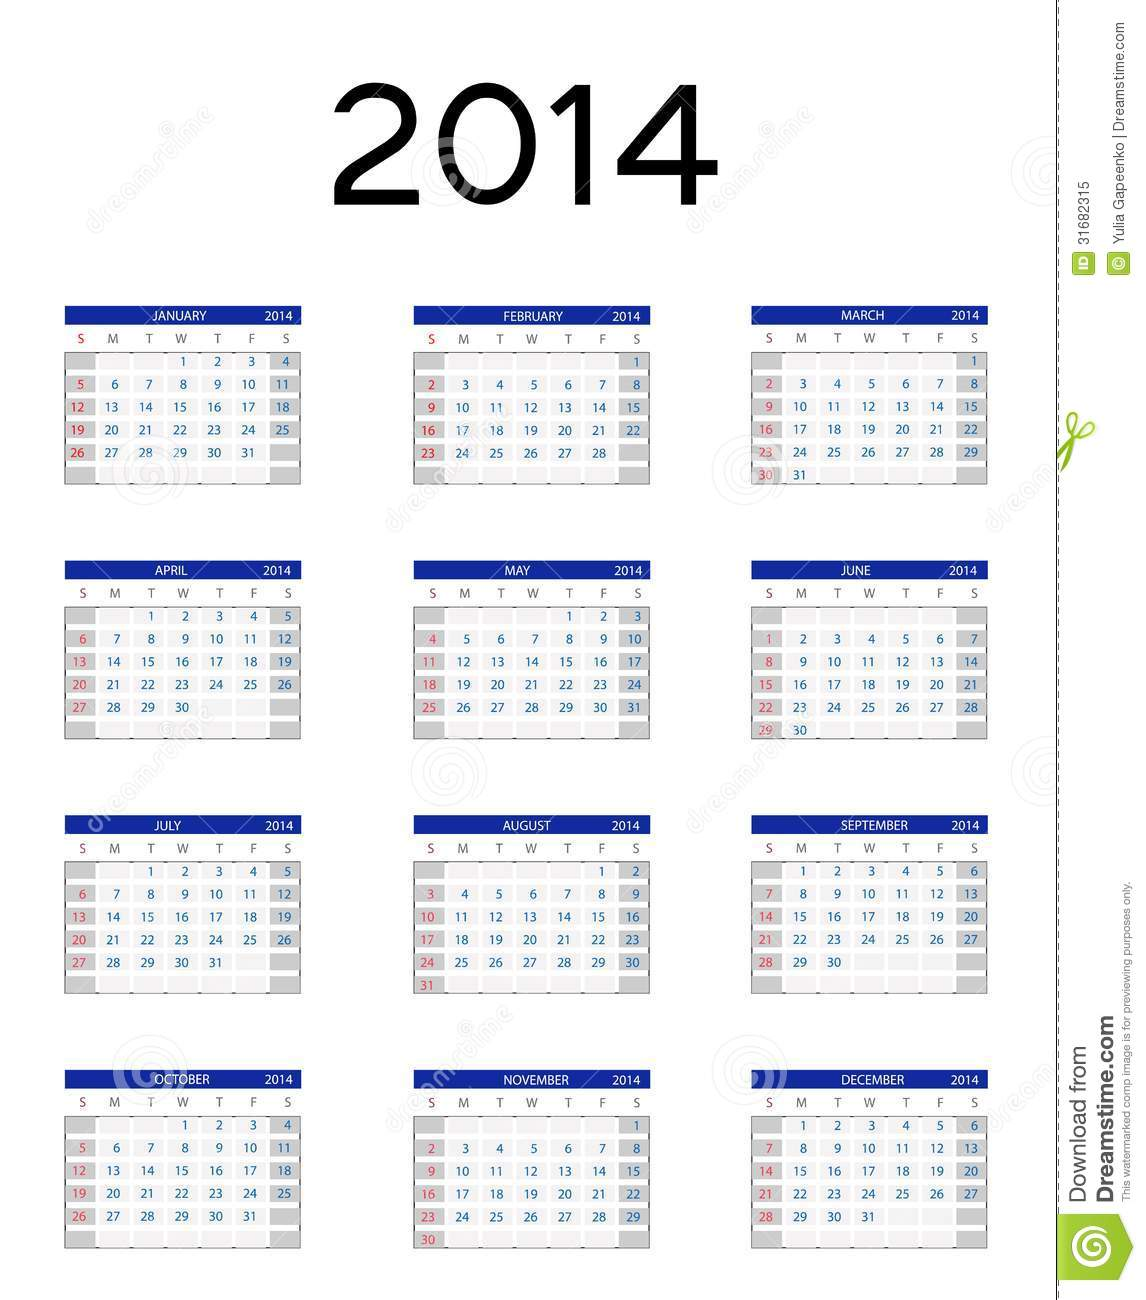 2014 New Year Calendar Vector Illustration Royalty Free Stock ...